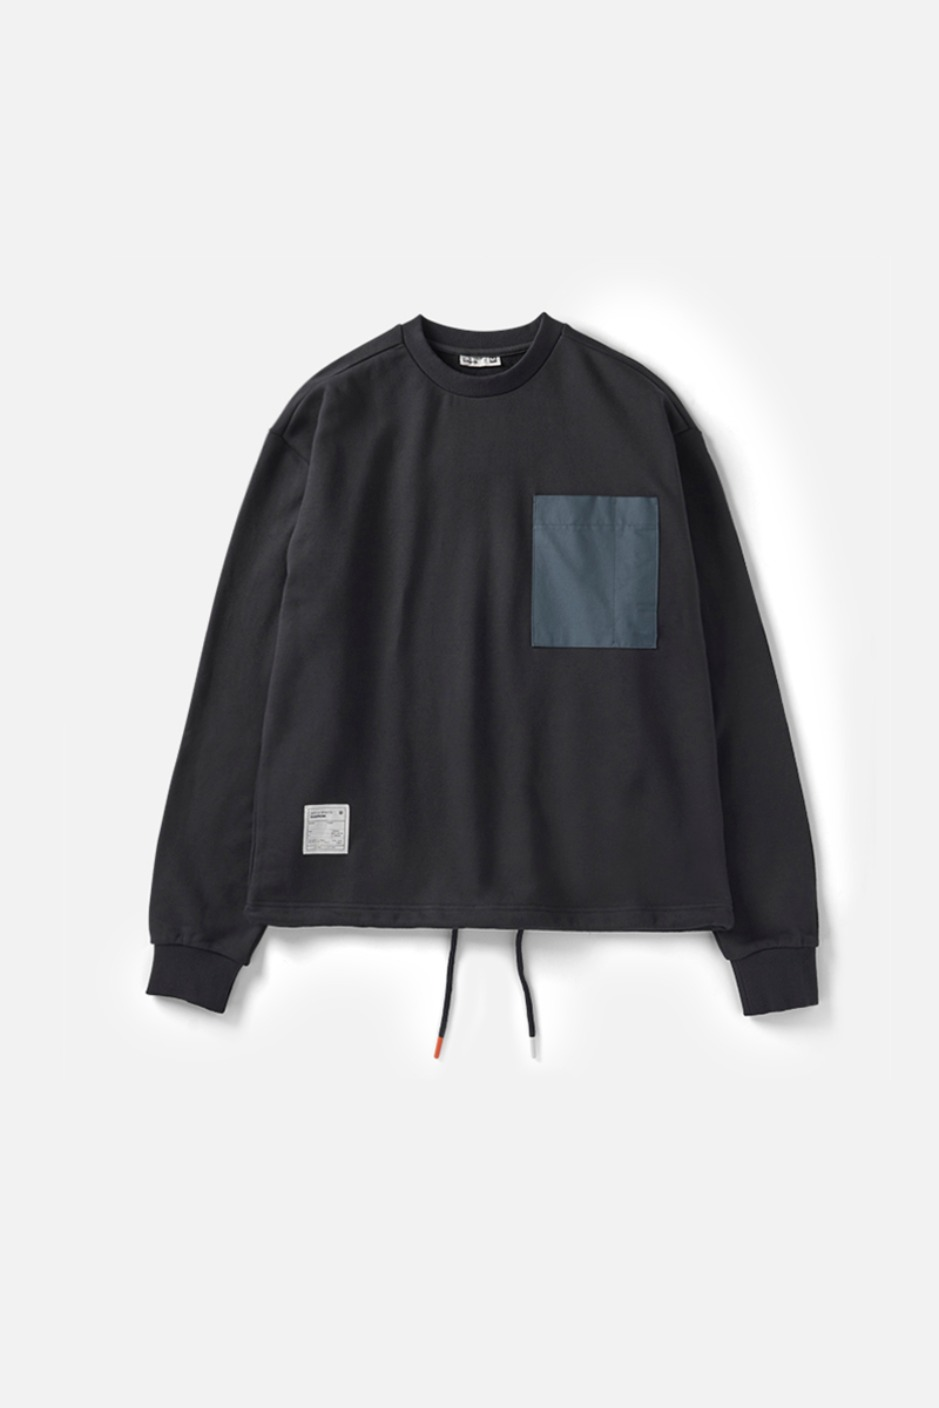 RAWROW X AECA WHITE STRING SWEAT SHIRT-CHARCOAL